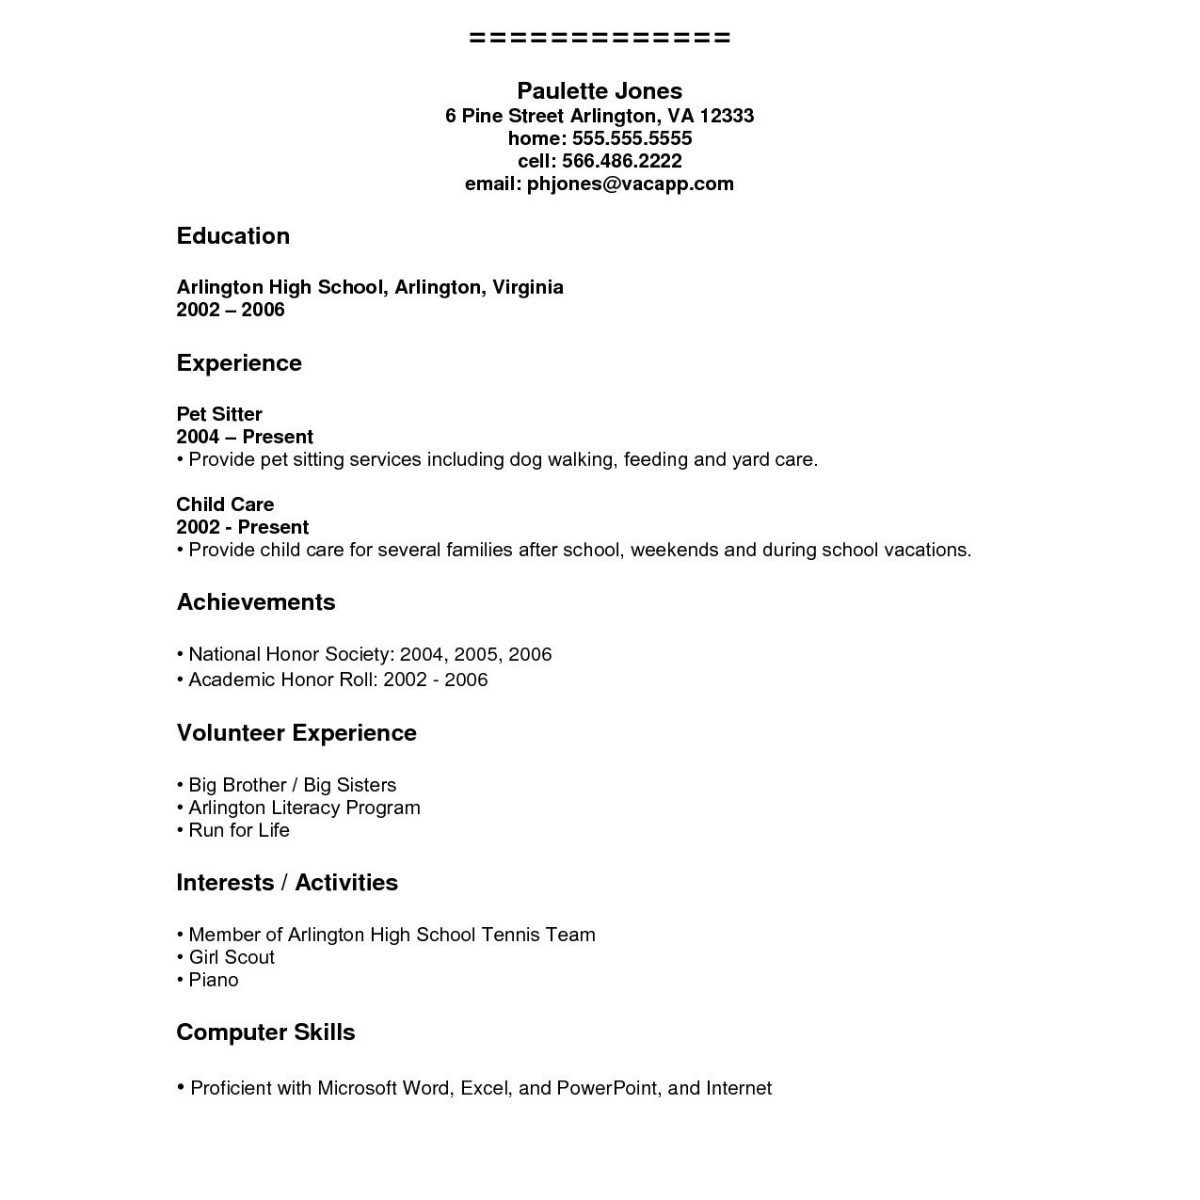 Resume Creator for Students - Create Resume for High School Student Pretty Resume Builder for